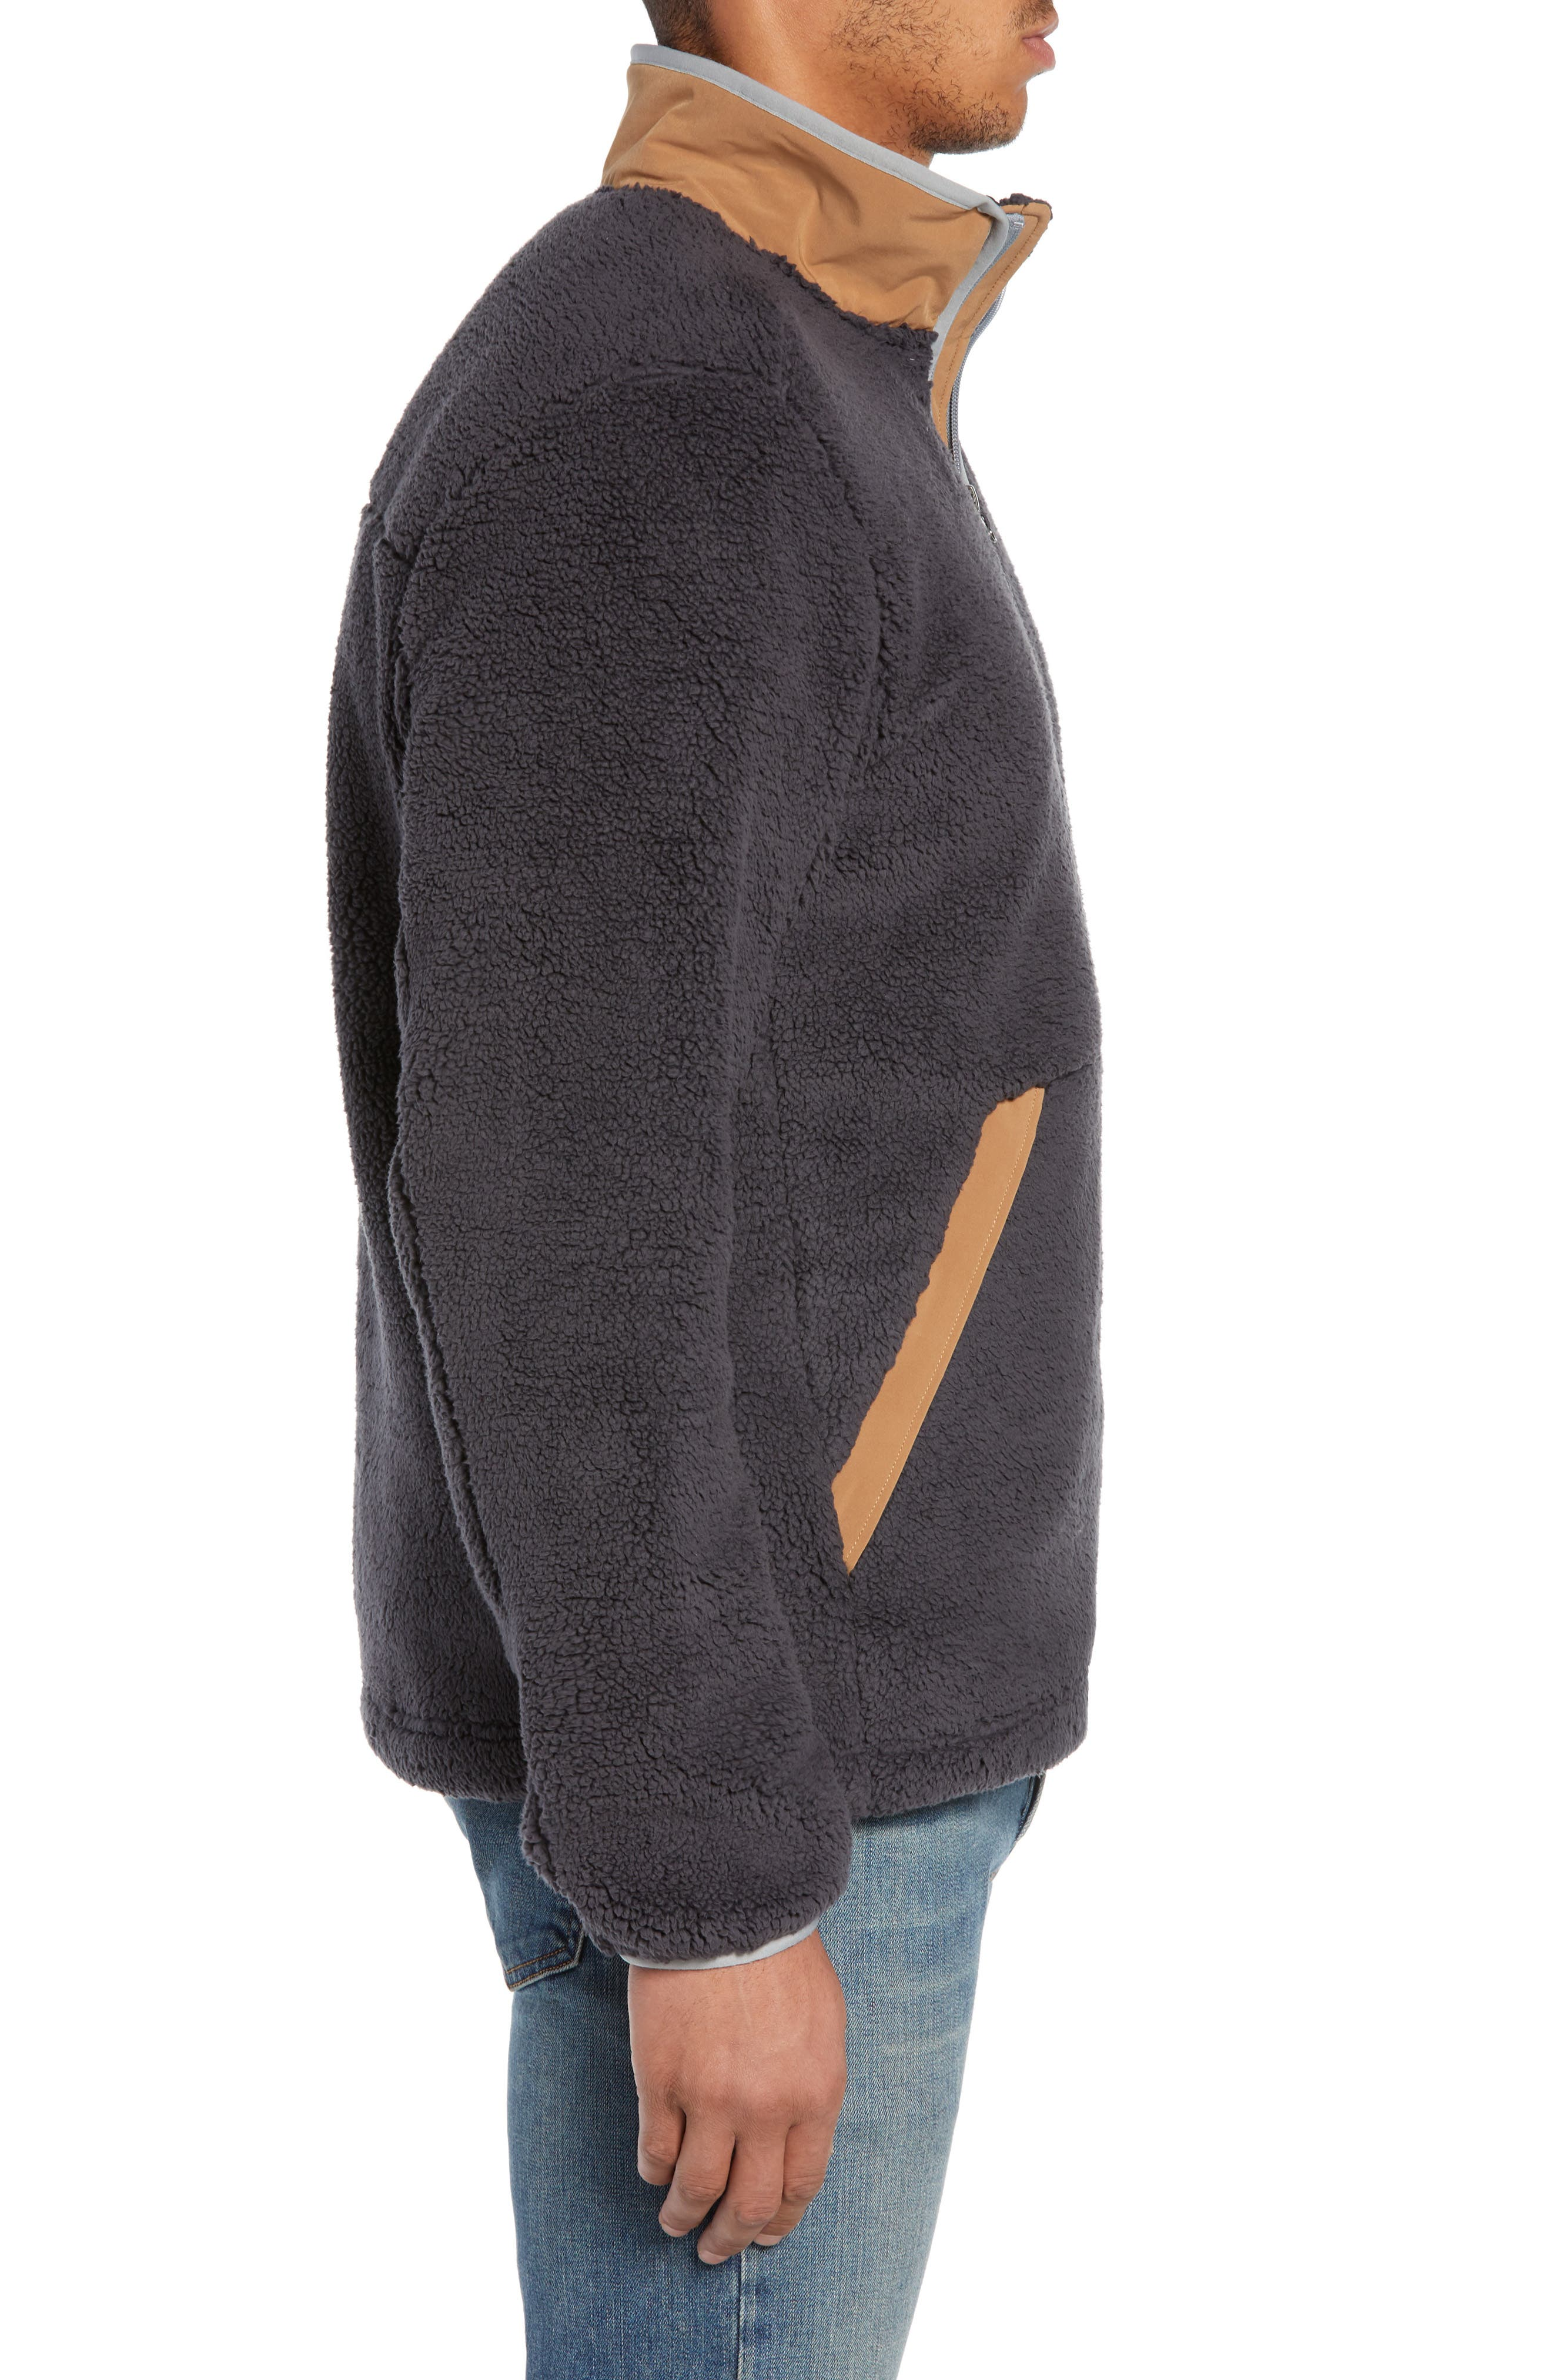 THE NORTH FACE,                             Campshire Pullover Fleece Jacket,                             Alternate thumbnail 4, color,                             001